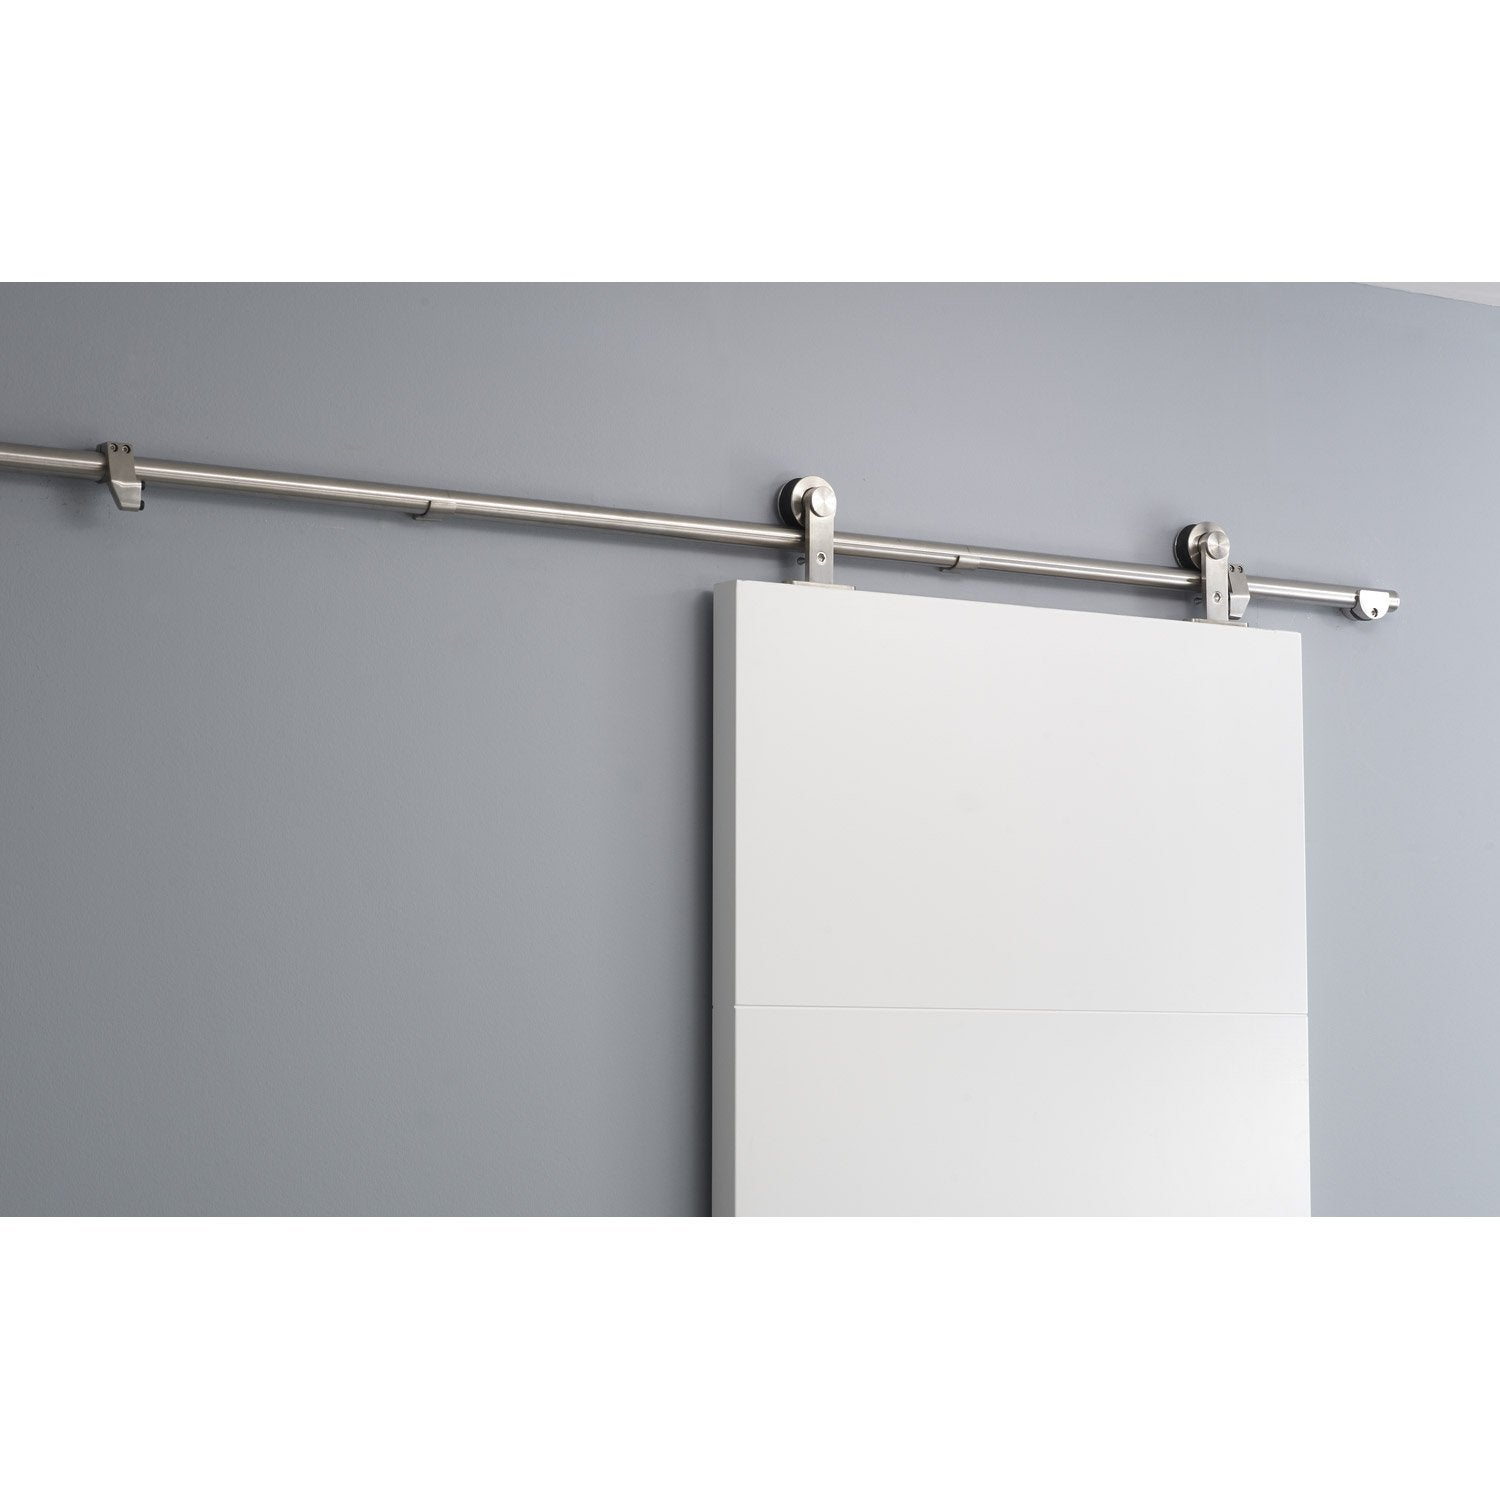 Rail coulissant techno design pour porte de largeur 83 cm maximum leroy me - Leroy merlin rail coulissant ...